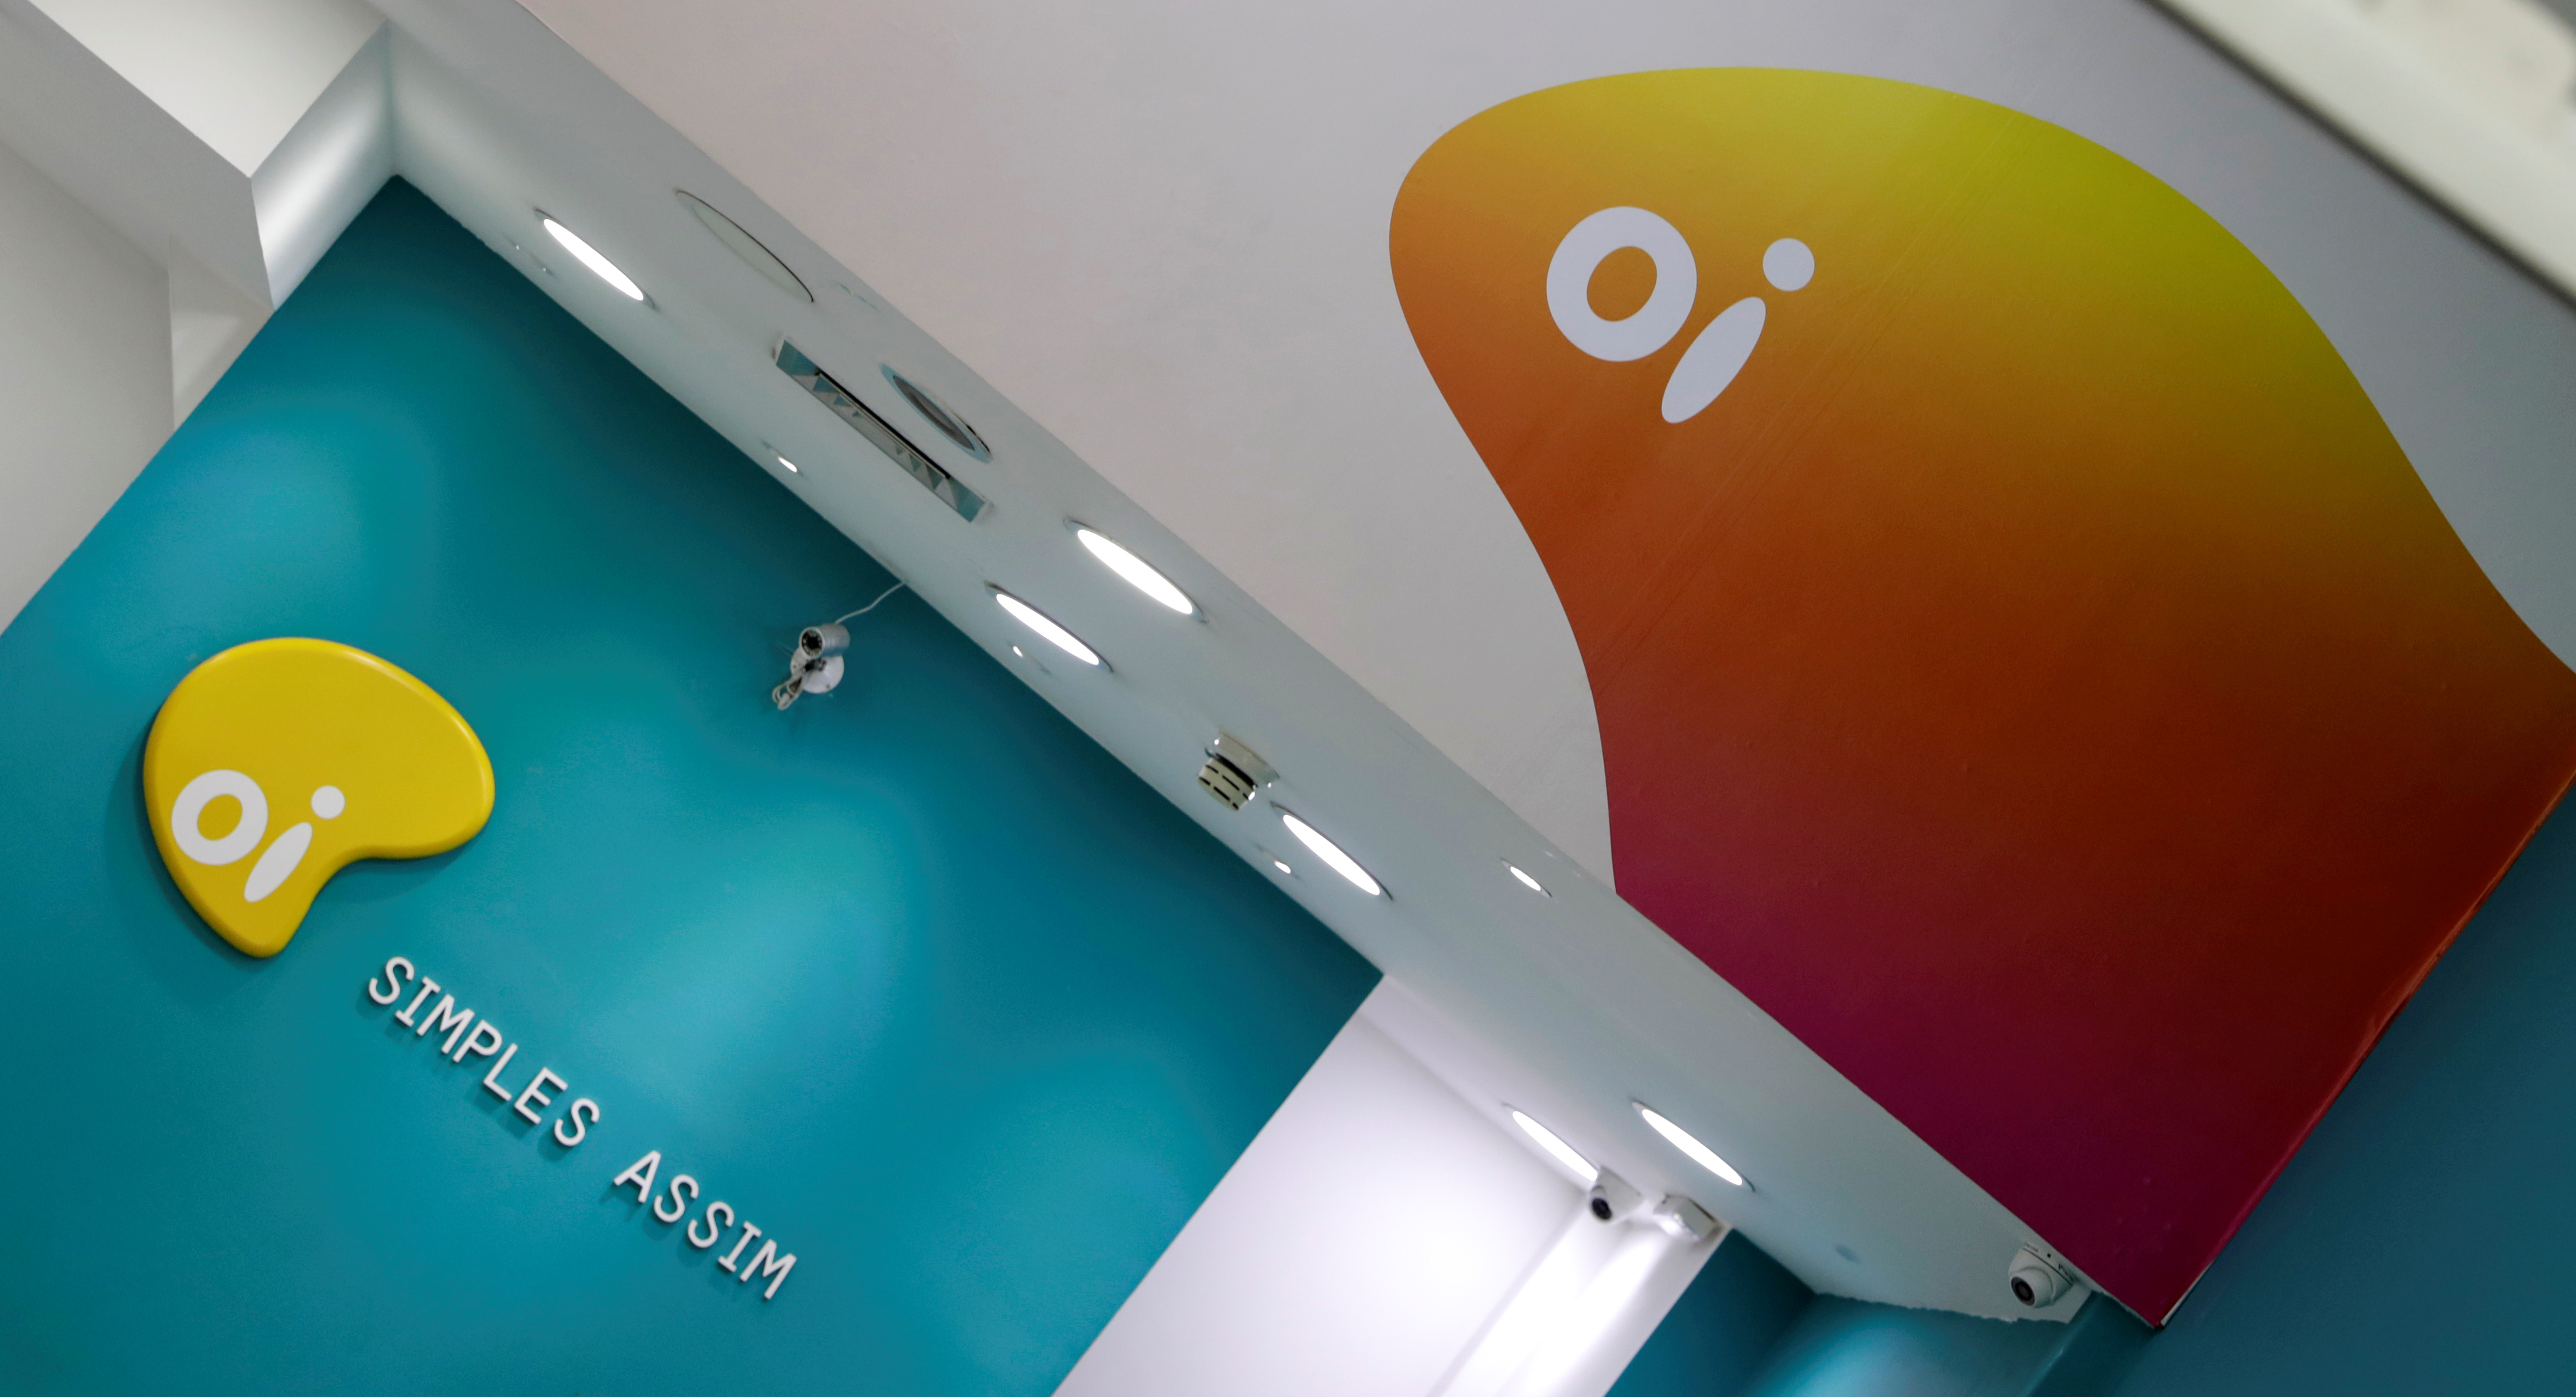 The logo of Brazilian telecoms company Oi SA is pictured inside a store in Sao Paulo, Brazil July 18, 2018. REUTERS/Paulo Whitaker